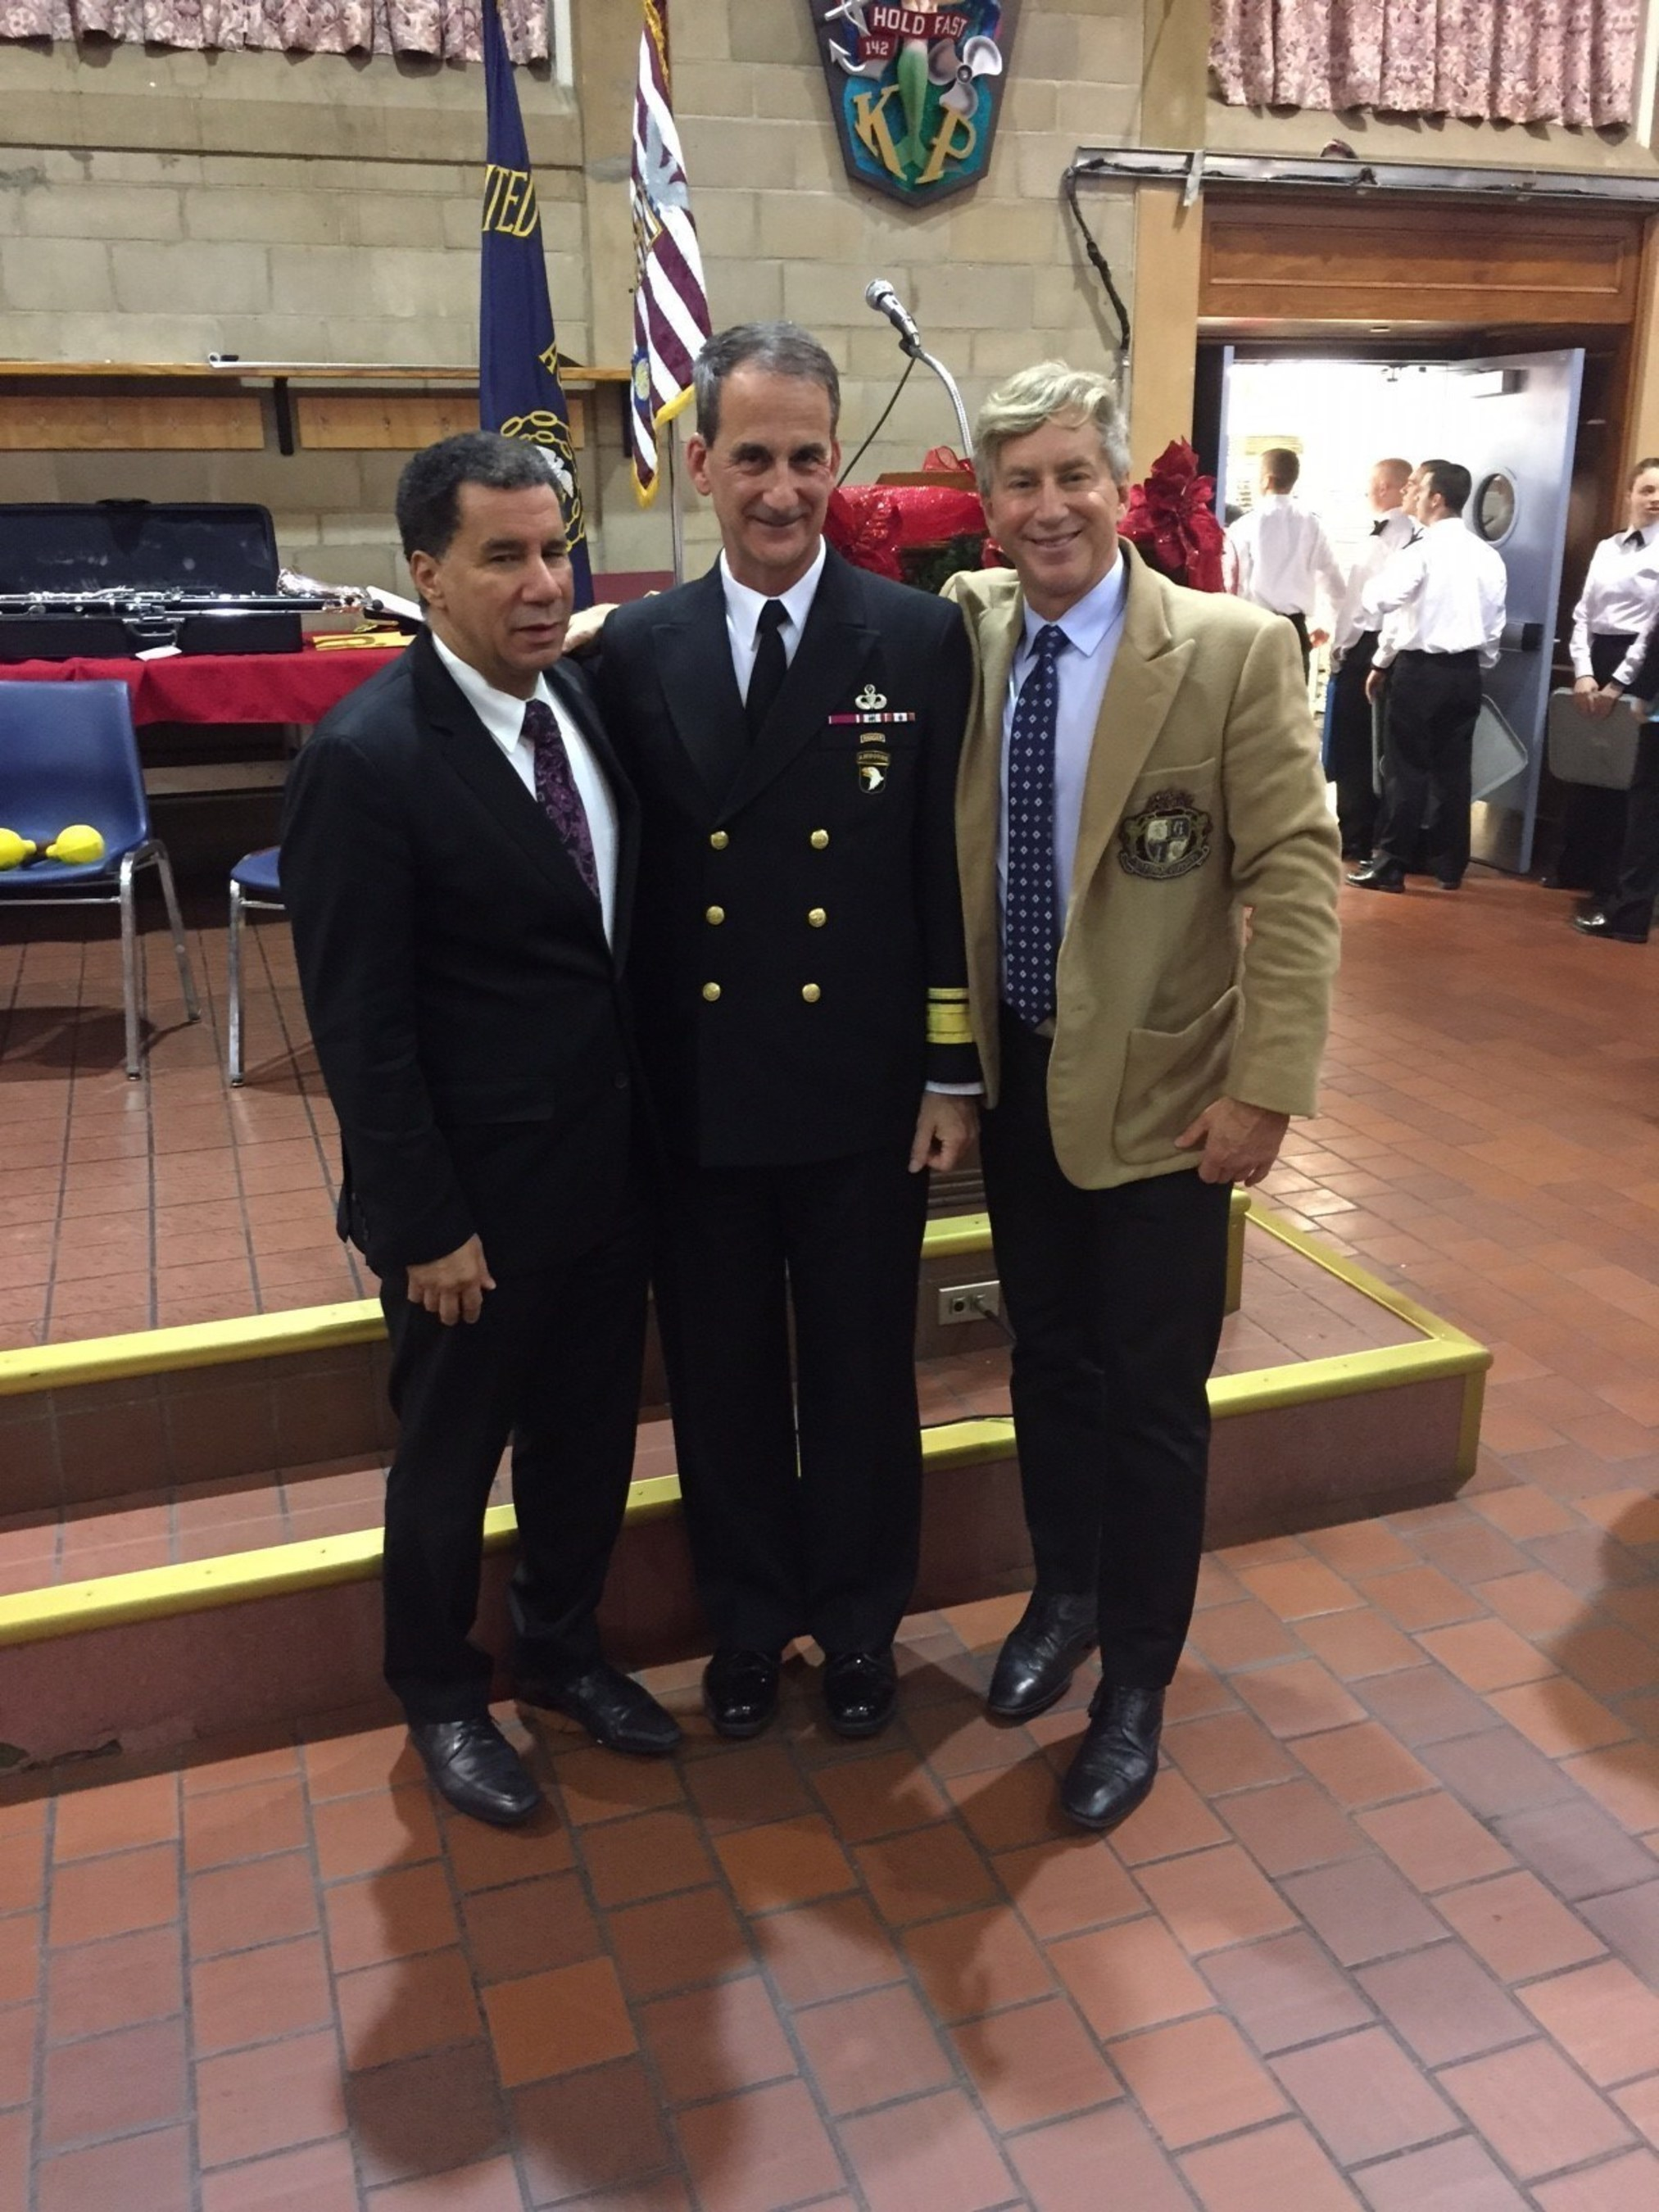 Former Governor David Patterson and Eric Braverman, MD present the Braverman Emergency Medical Service Award to Admiral James Helis. (L to R: Former Governor David Patterson, Admiral James Helis, and Eric Braverman, MD)